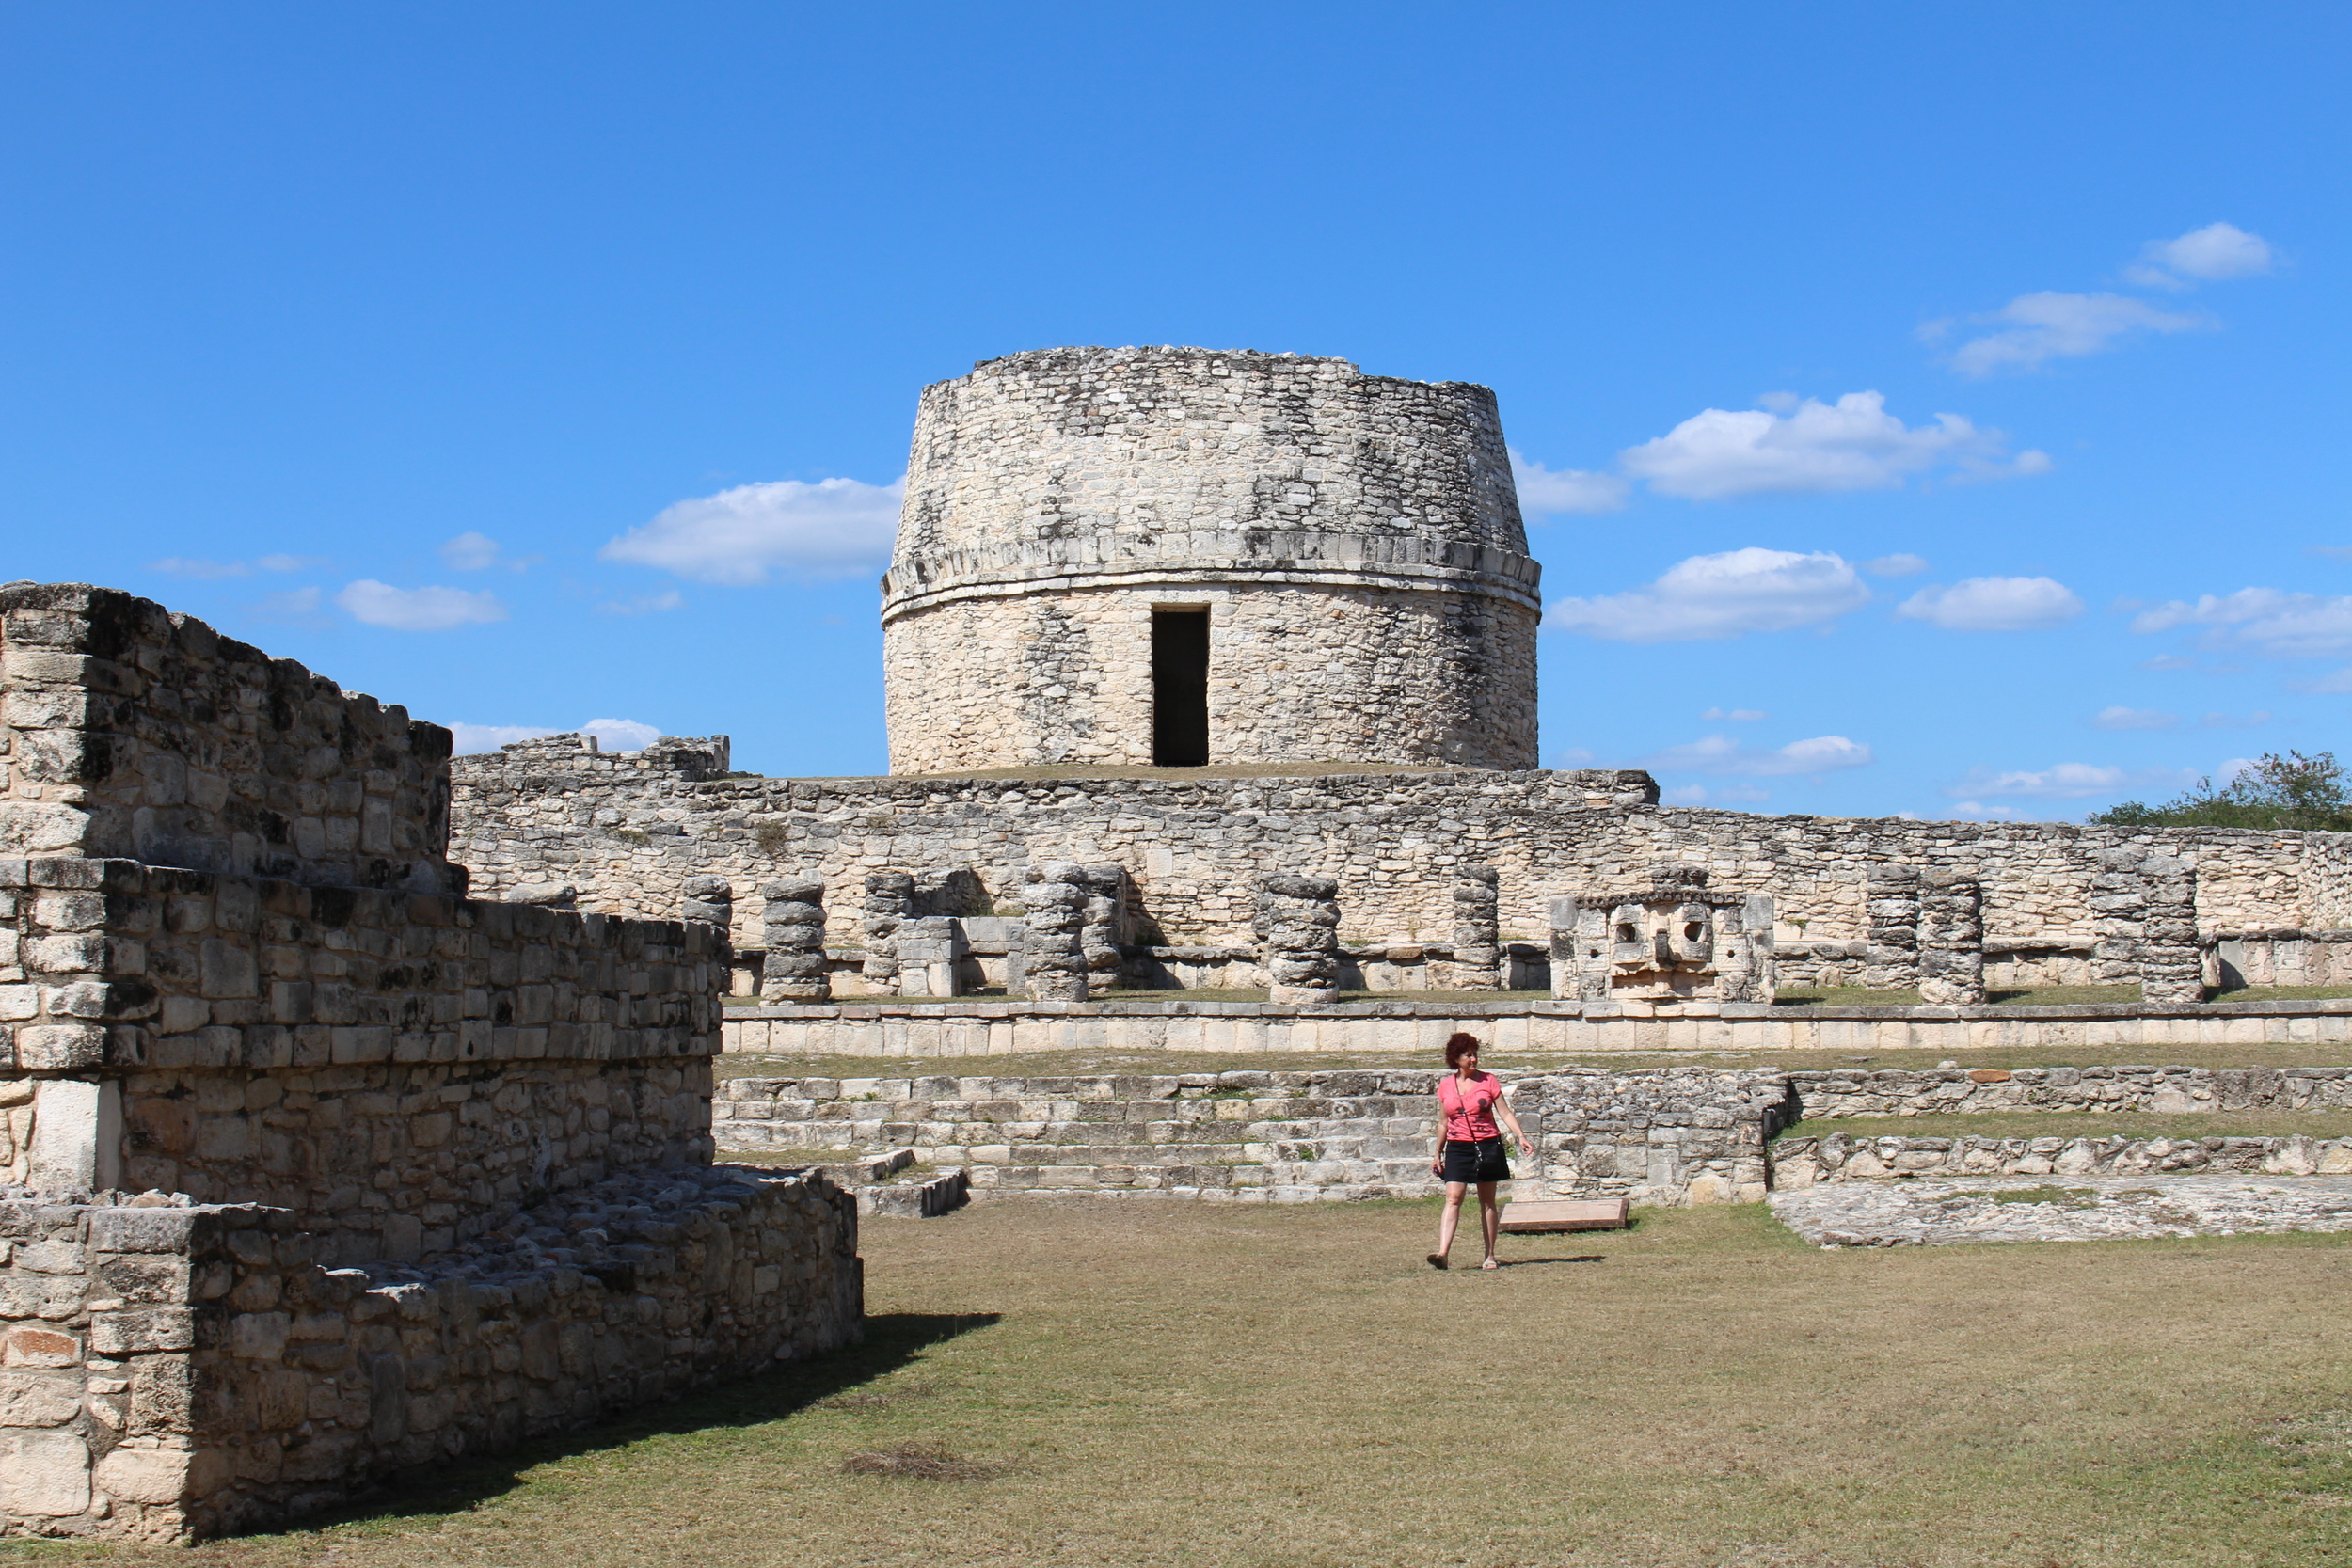 This building at Mayapan remarkably resembles the 'observatory' at Chichen Itza. There is a reason for that.